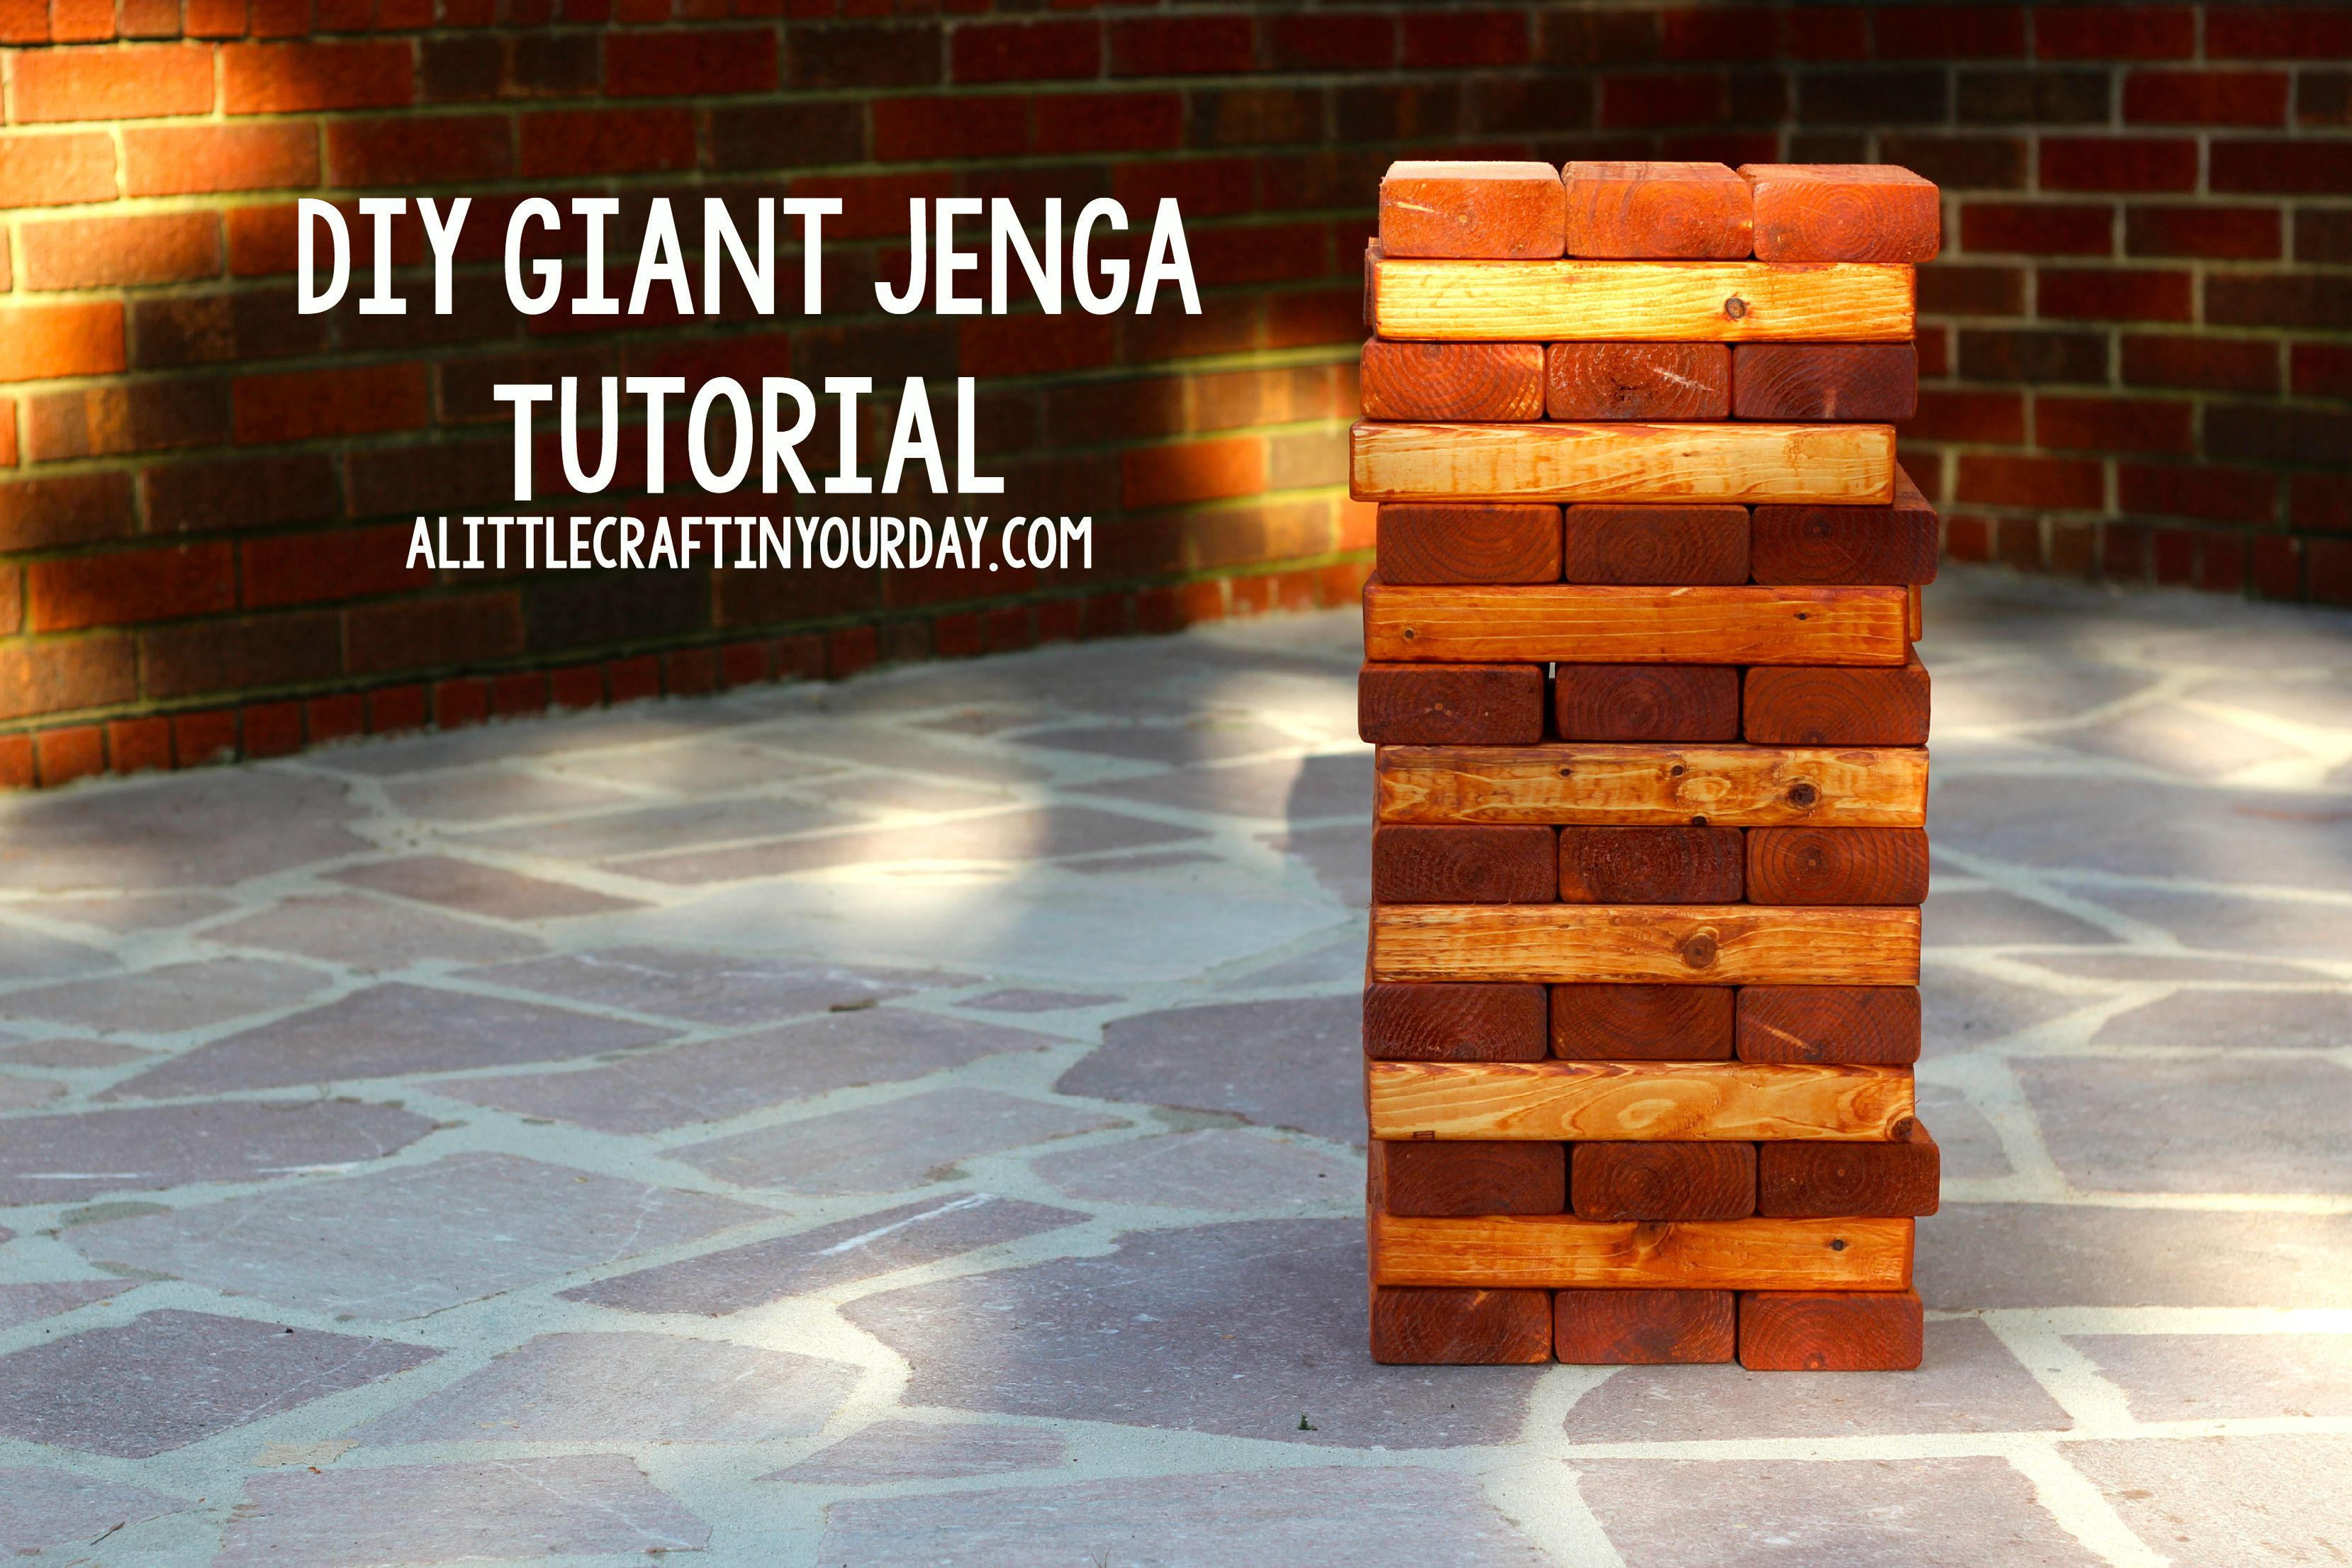 DIY Giant Jenga Tutorial - A Little Craft In Your Day